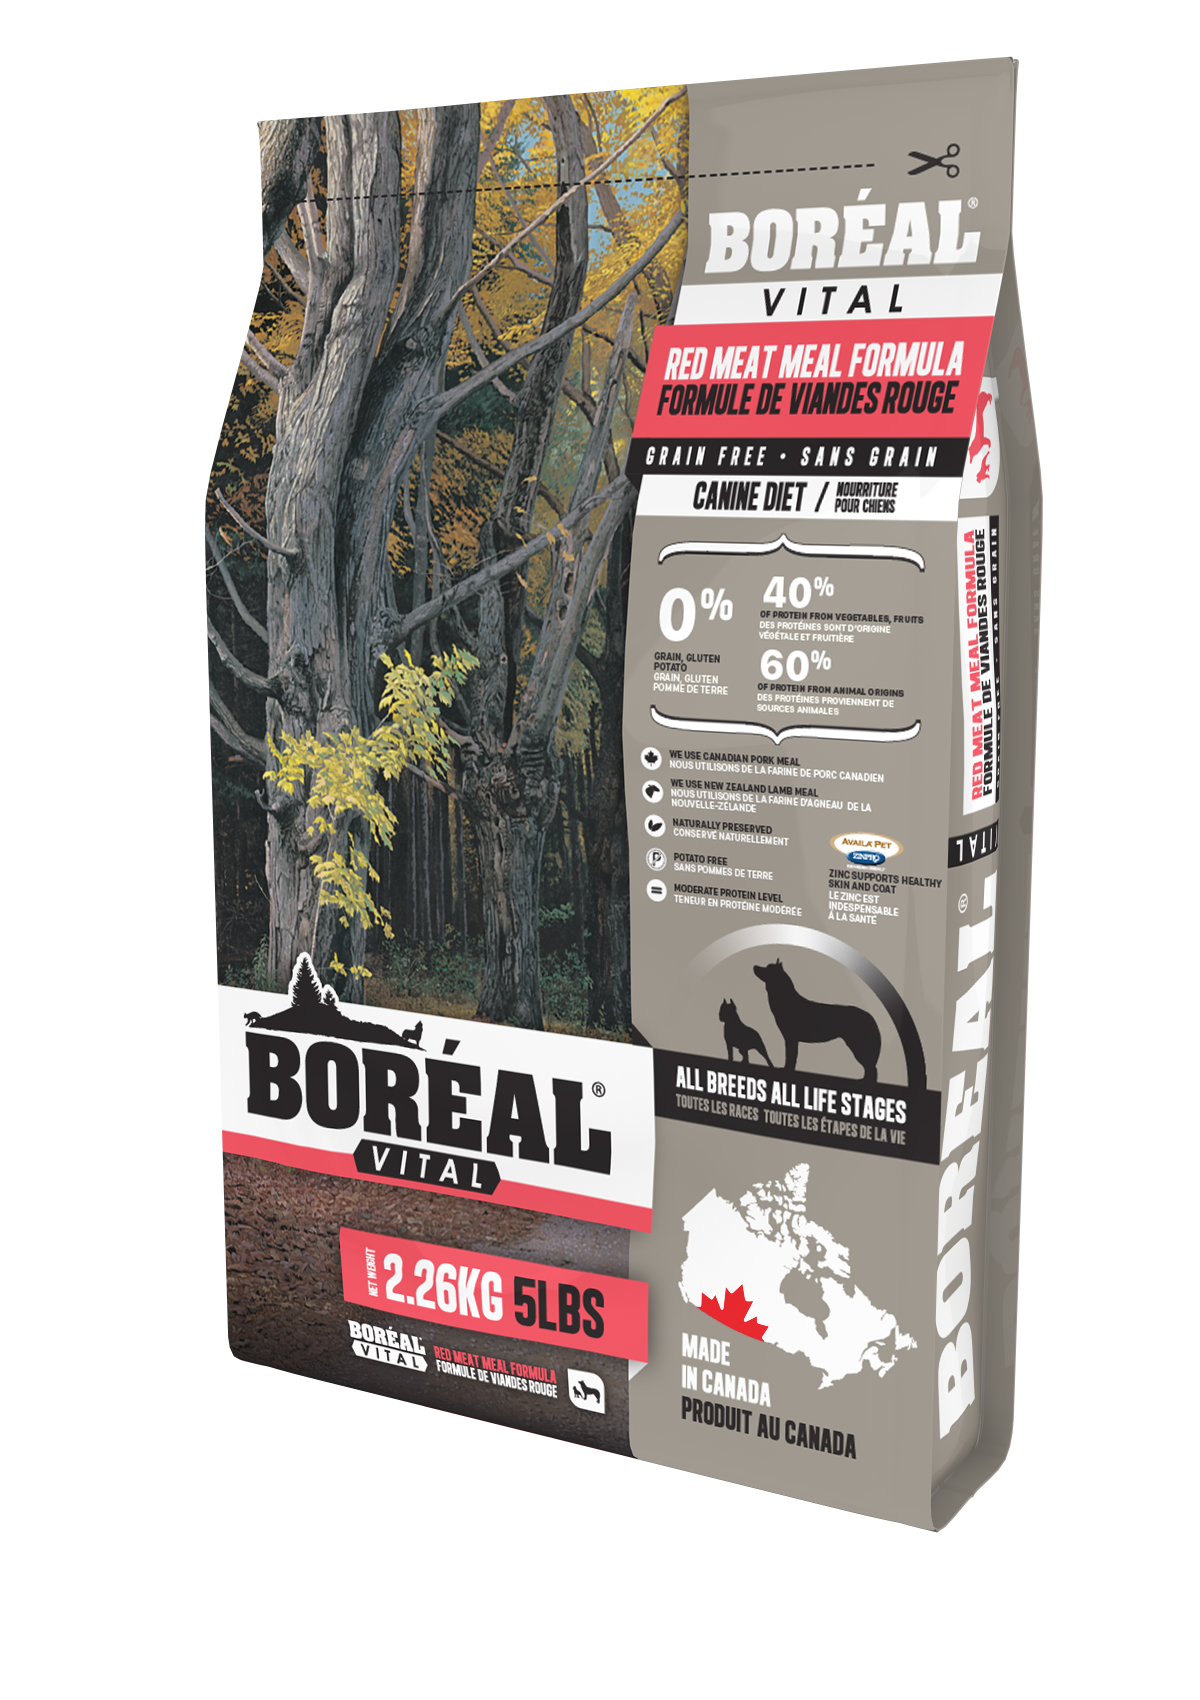 Boreal Vital All Breed Red Meat Meal - Grain Free Dry Dog Food, 11.33kg bag